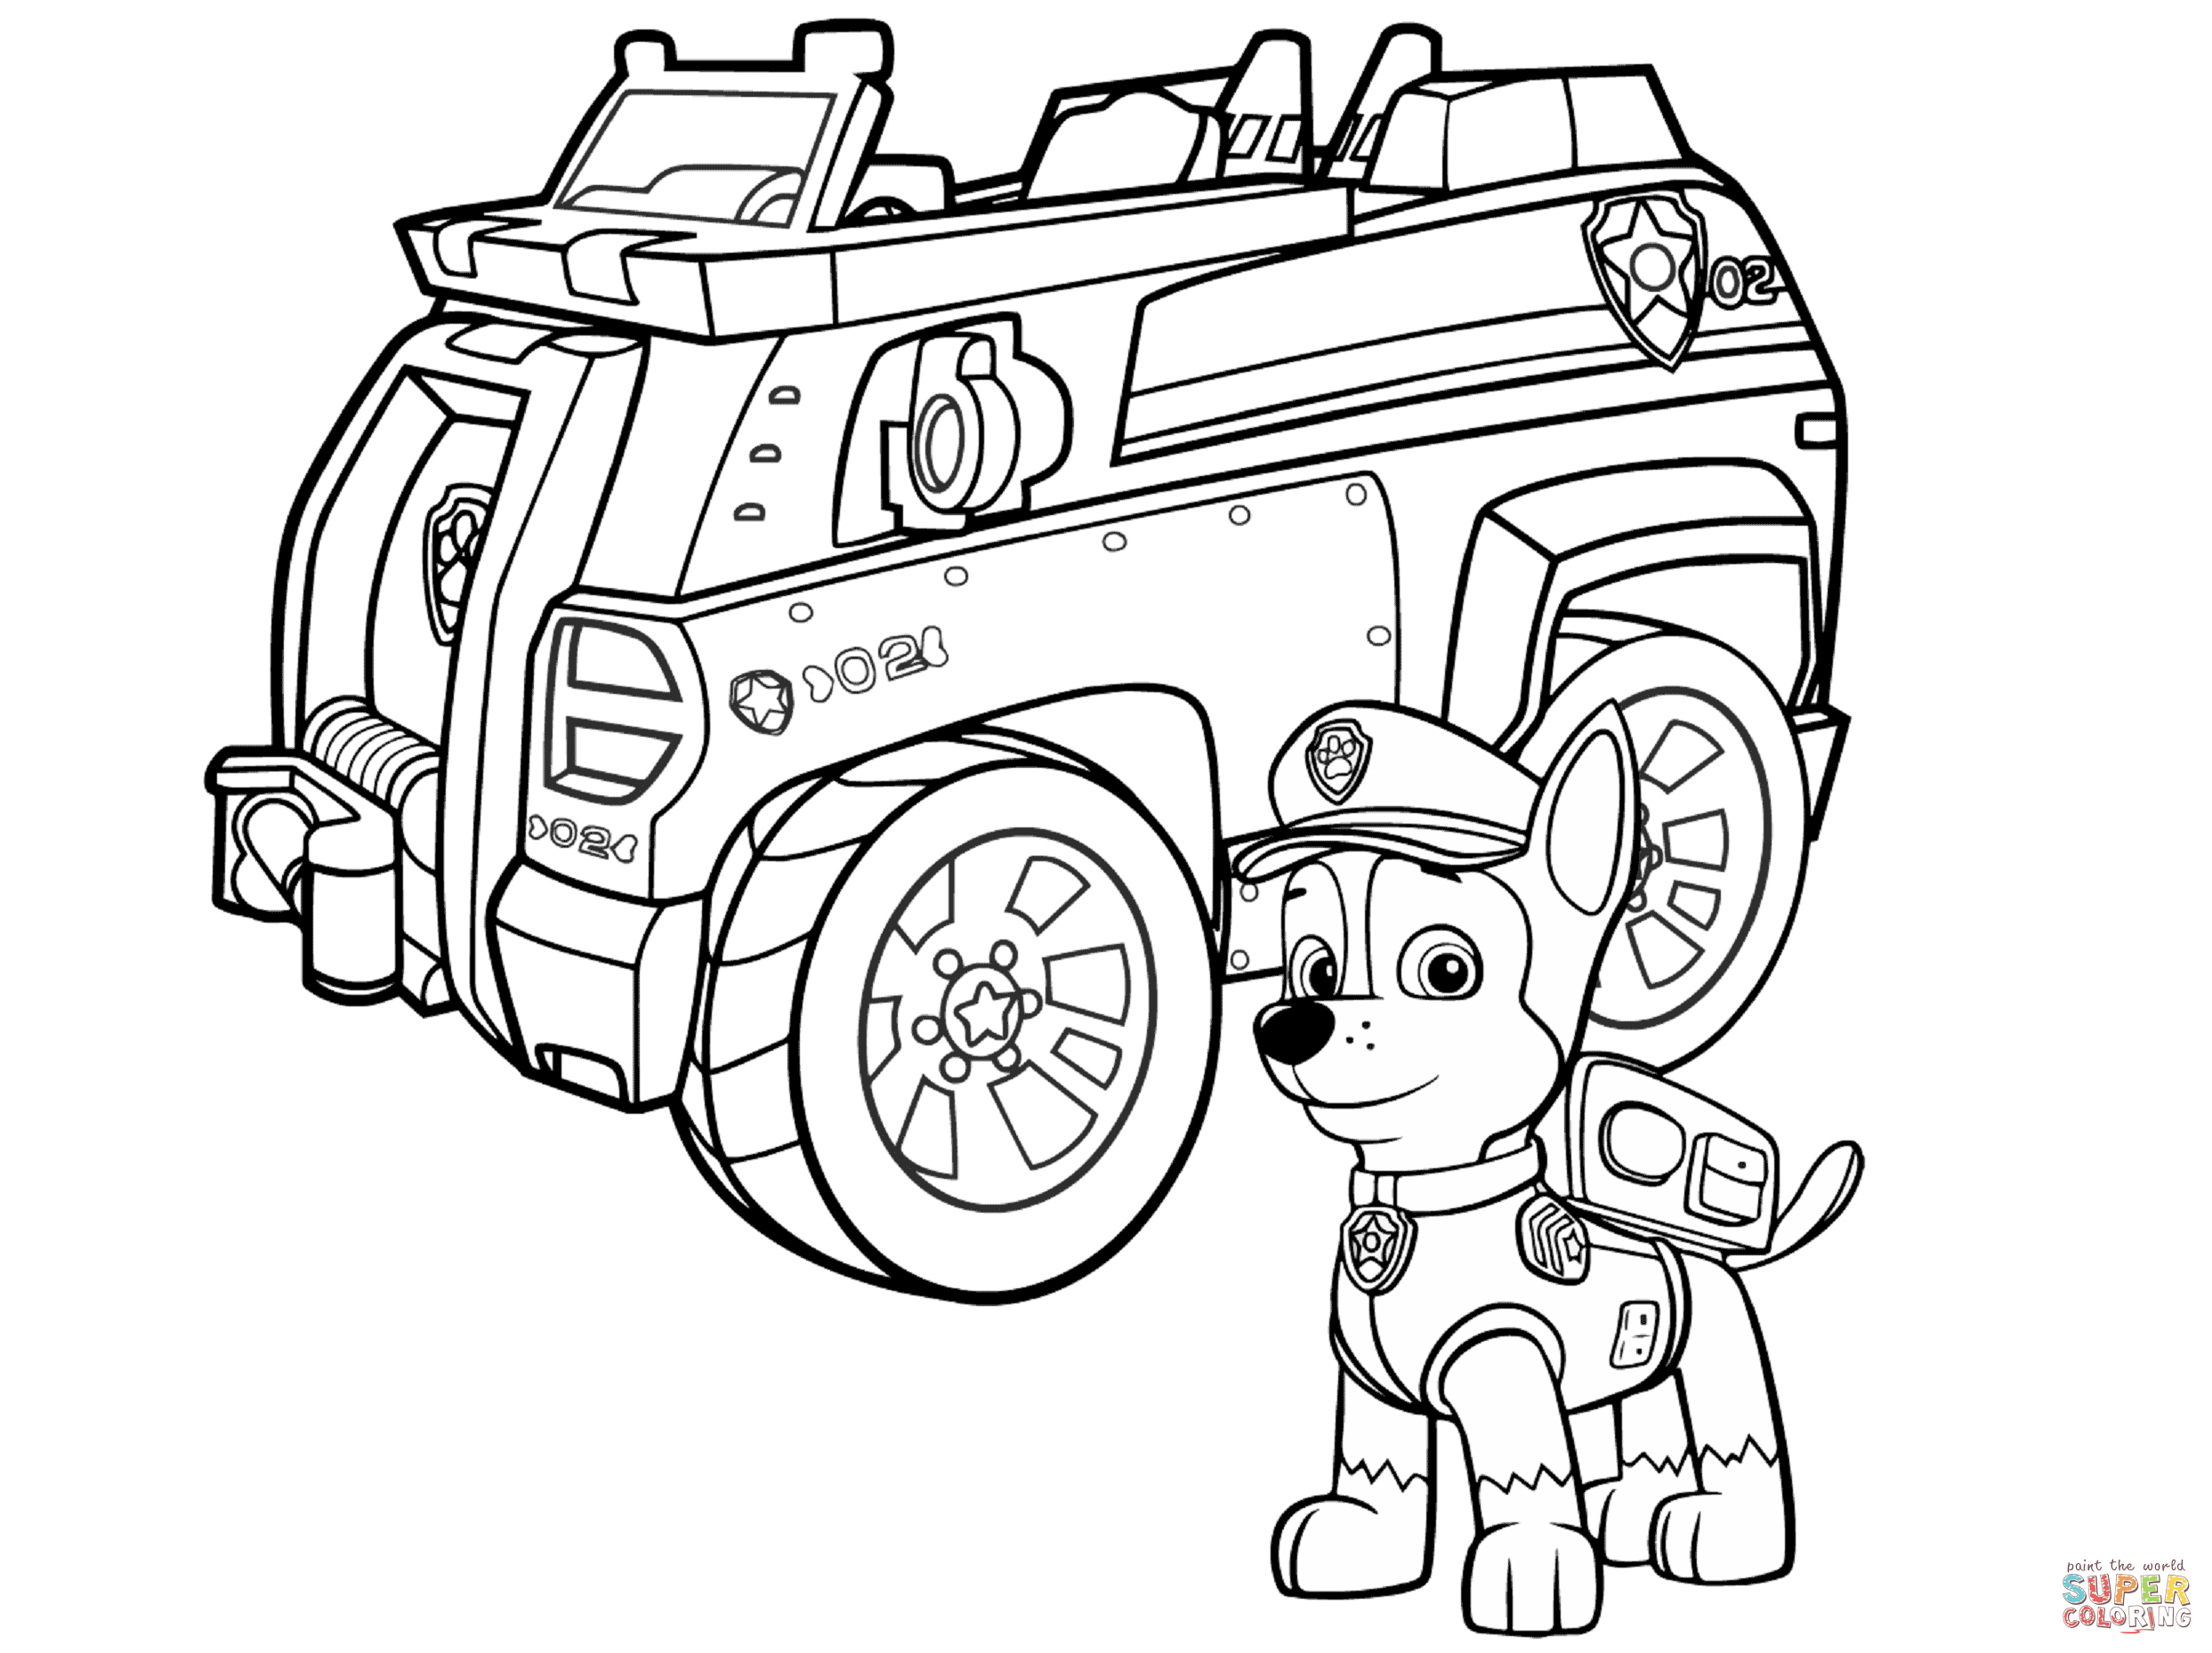 Paw Patrol Chase Police Car Coloring Page Free Printable